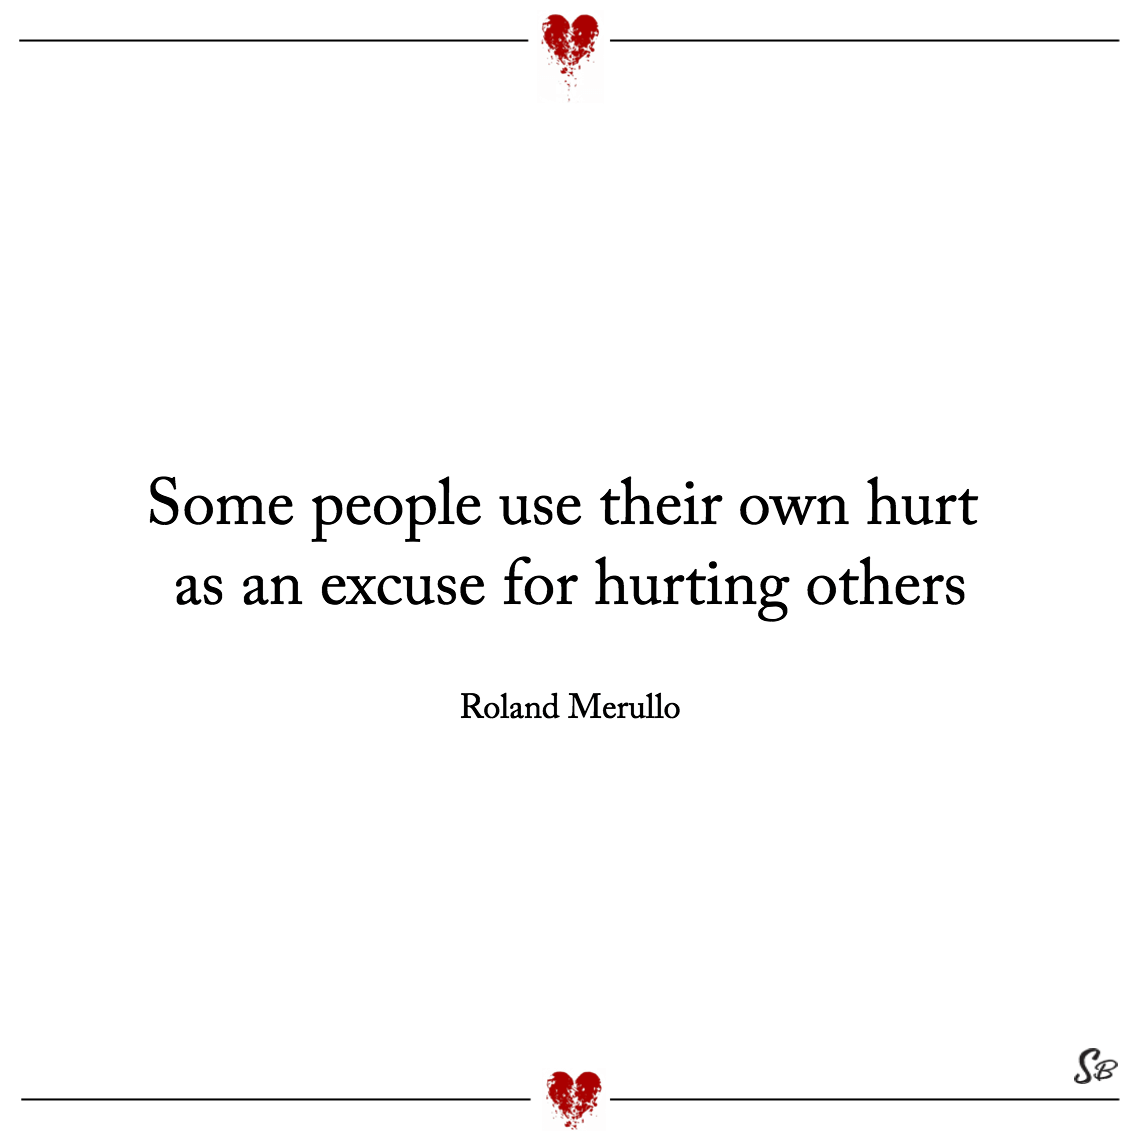 Some people use their own hurt as an excuse for hurting others roland merullo